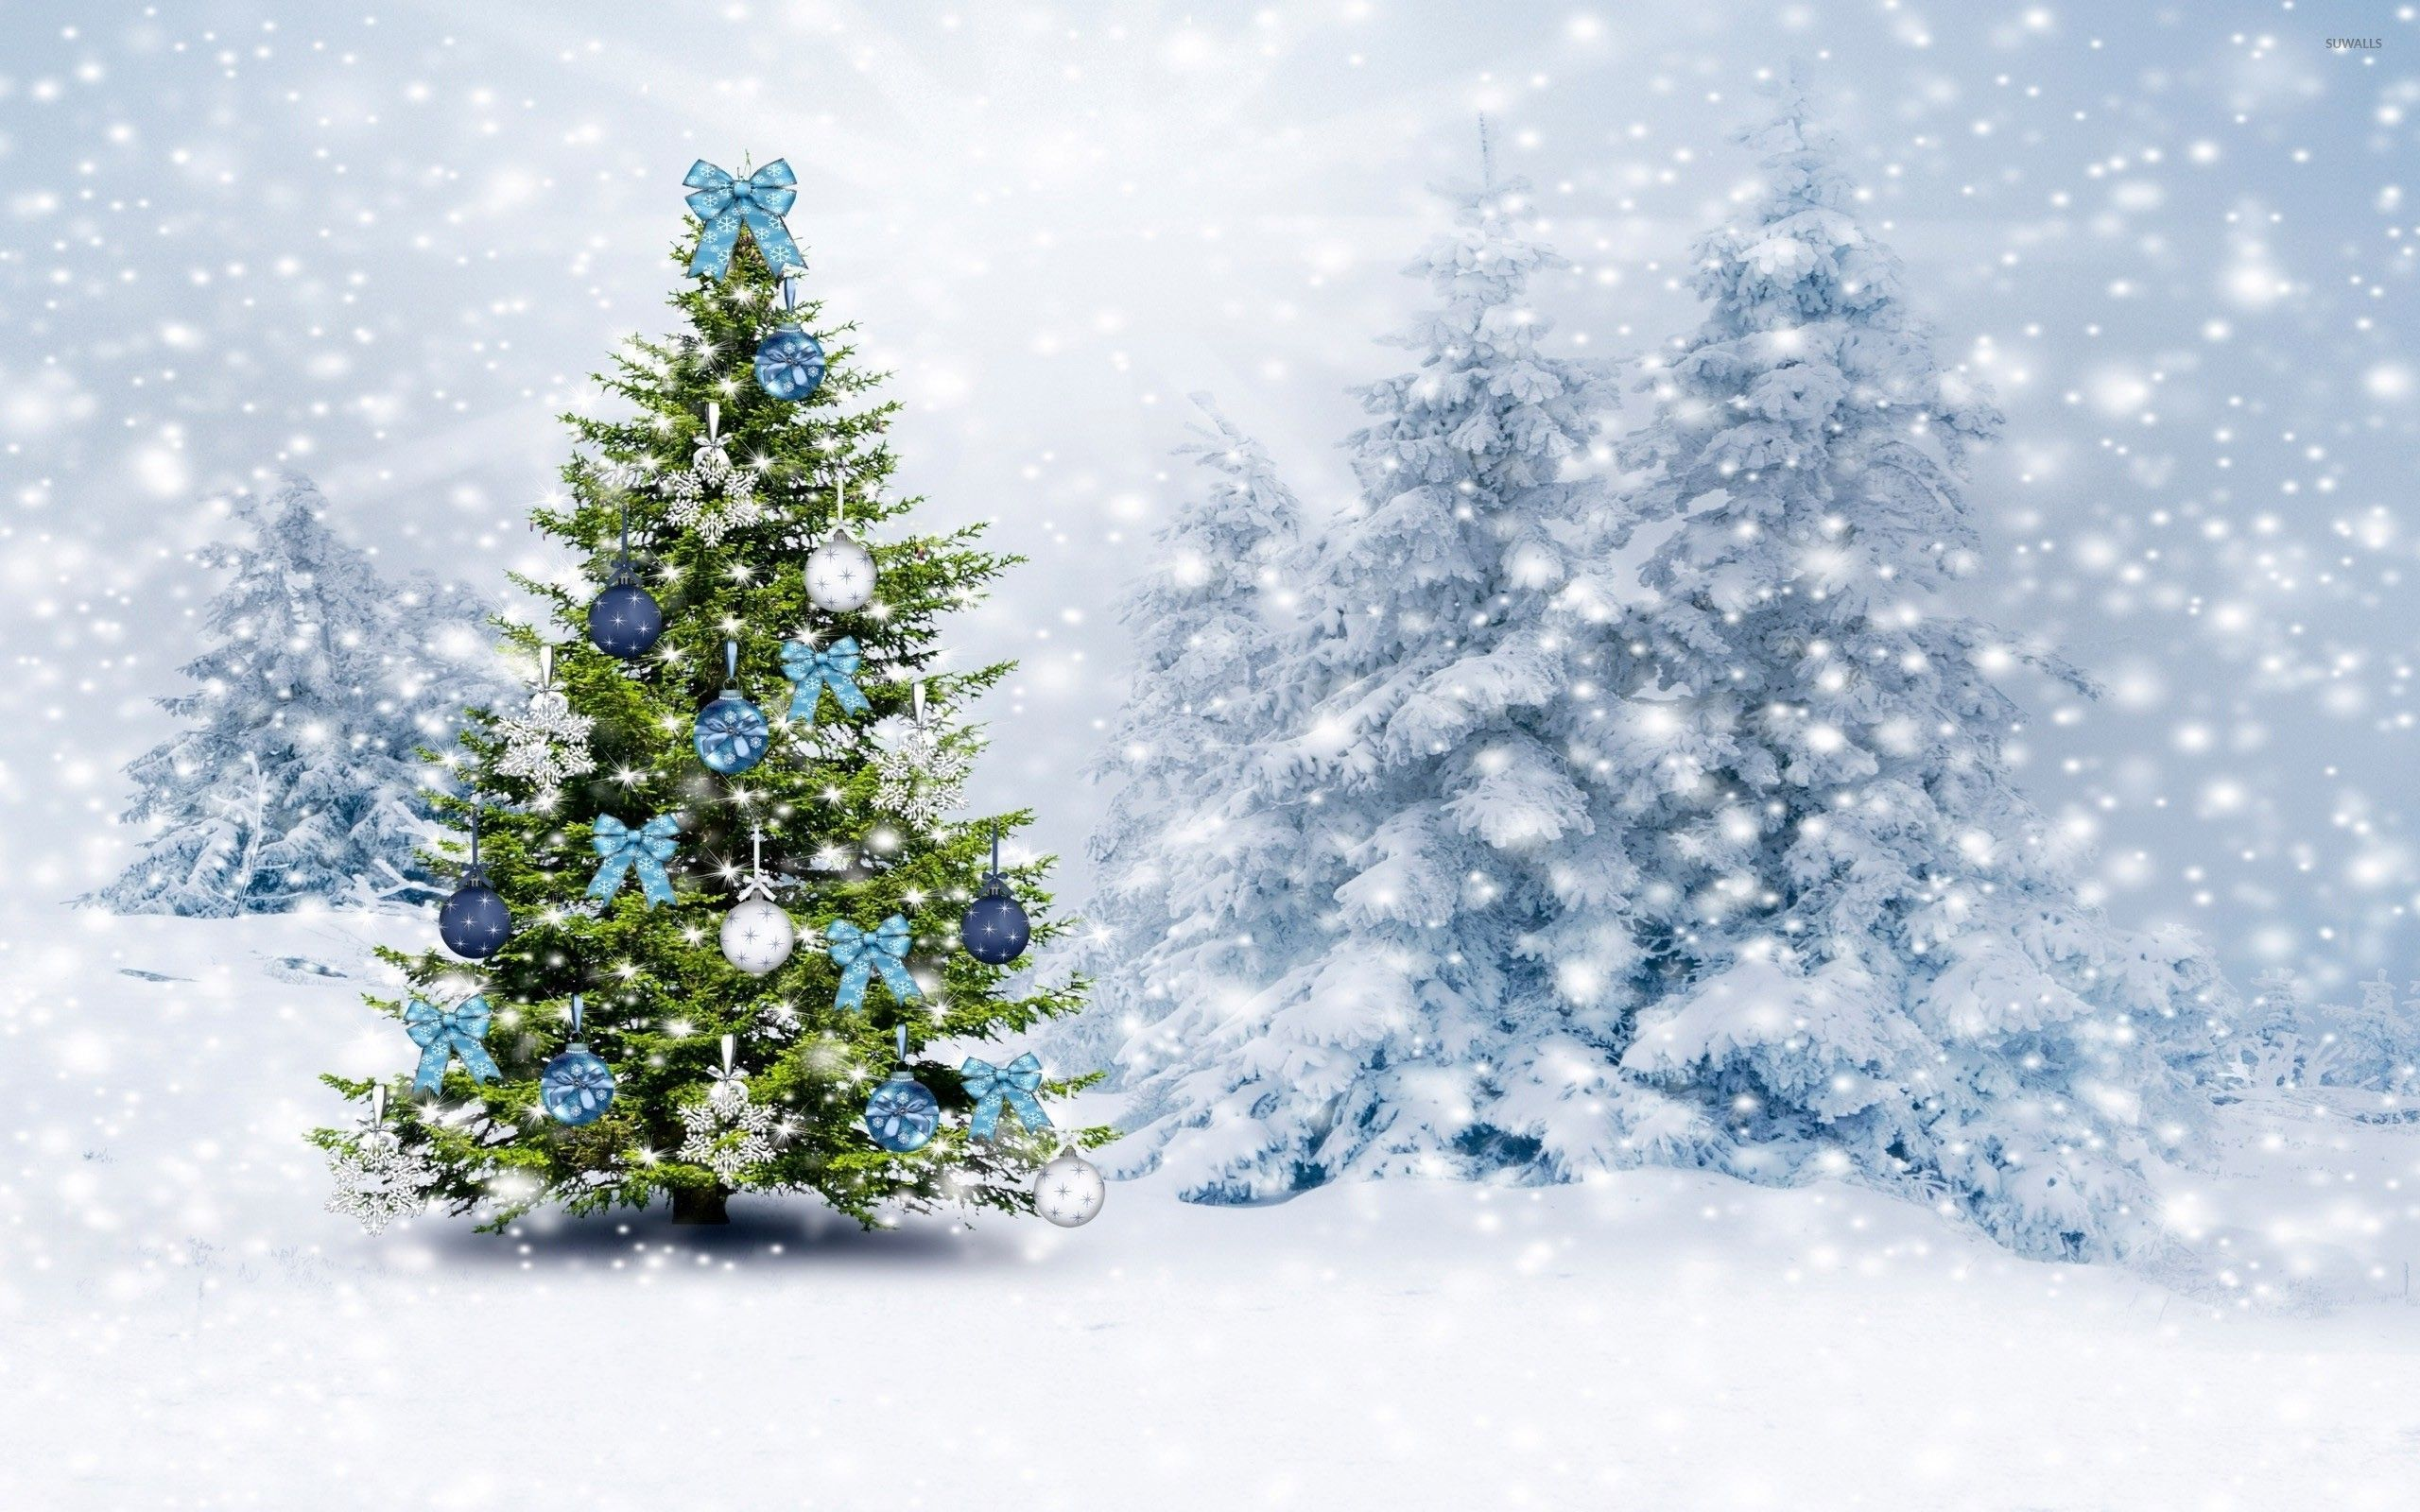 Snowy Christmas Trees Wallpapers Wallpaper Cave